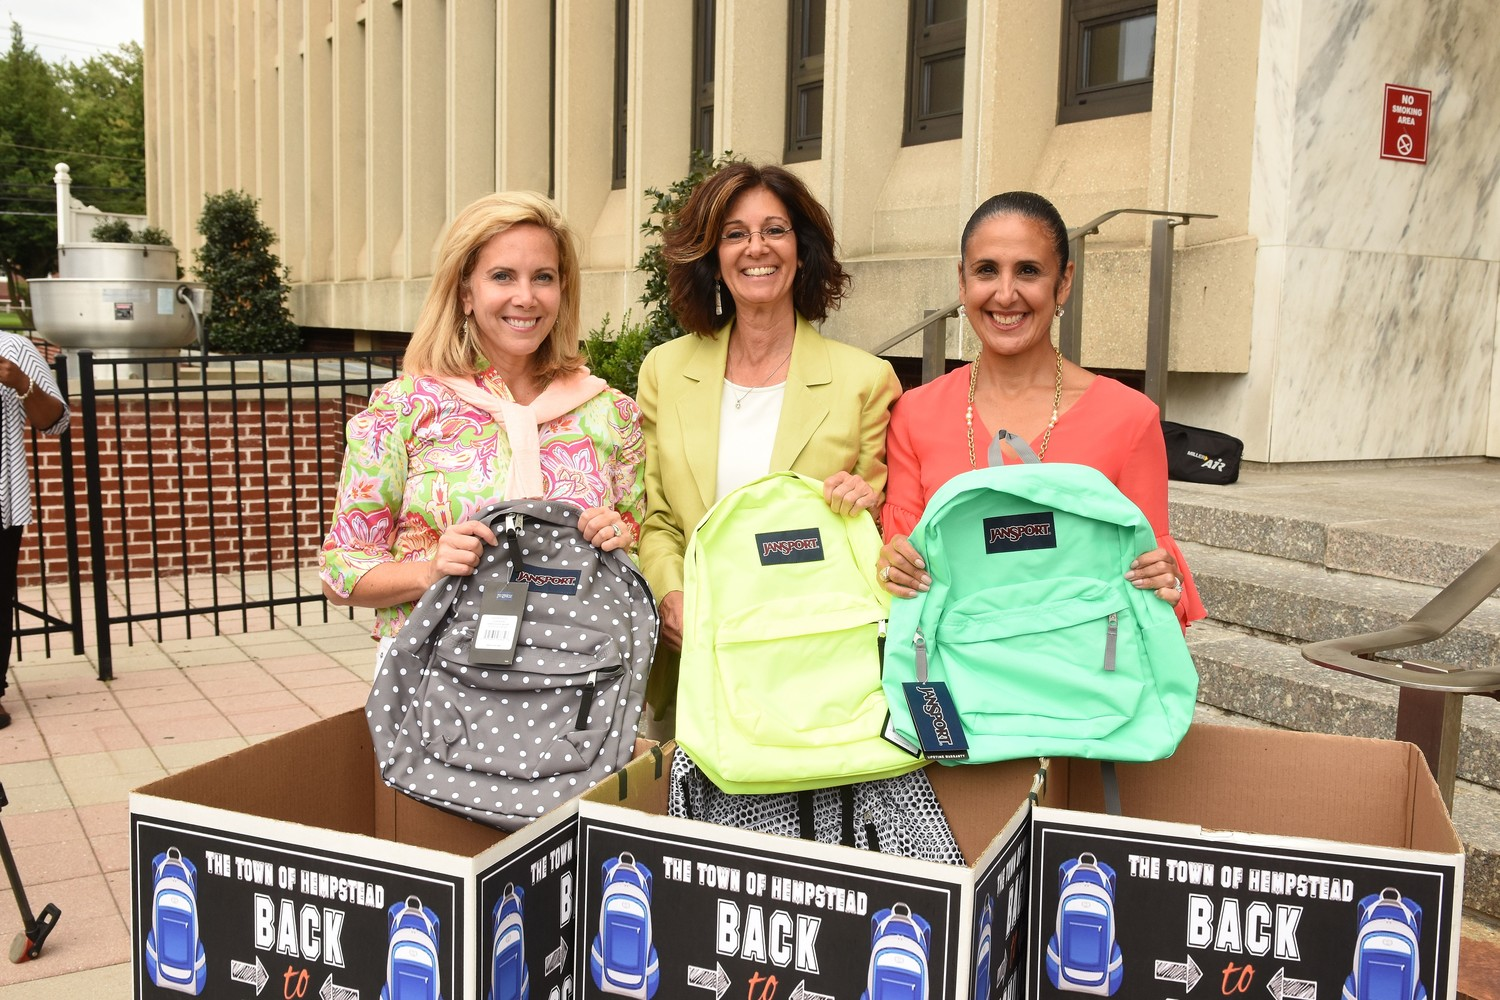 Hempstead Town Supervisor Laura Gillen (left), President and CEO of Island Harvest Food Bank Randi Shubin Dresner (middle), Town Clerk Sylvia Cabana (right) hope to collect 700 new backpacks for the Town of Hempstead's Kids Weekend Backpack Collection Drive.